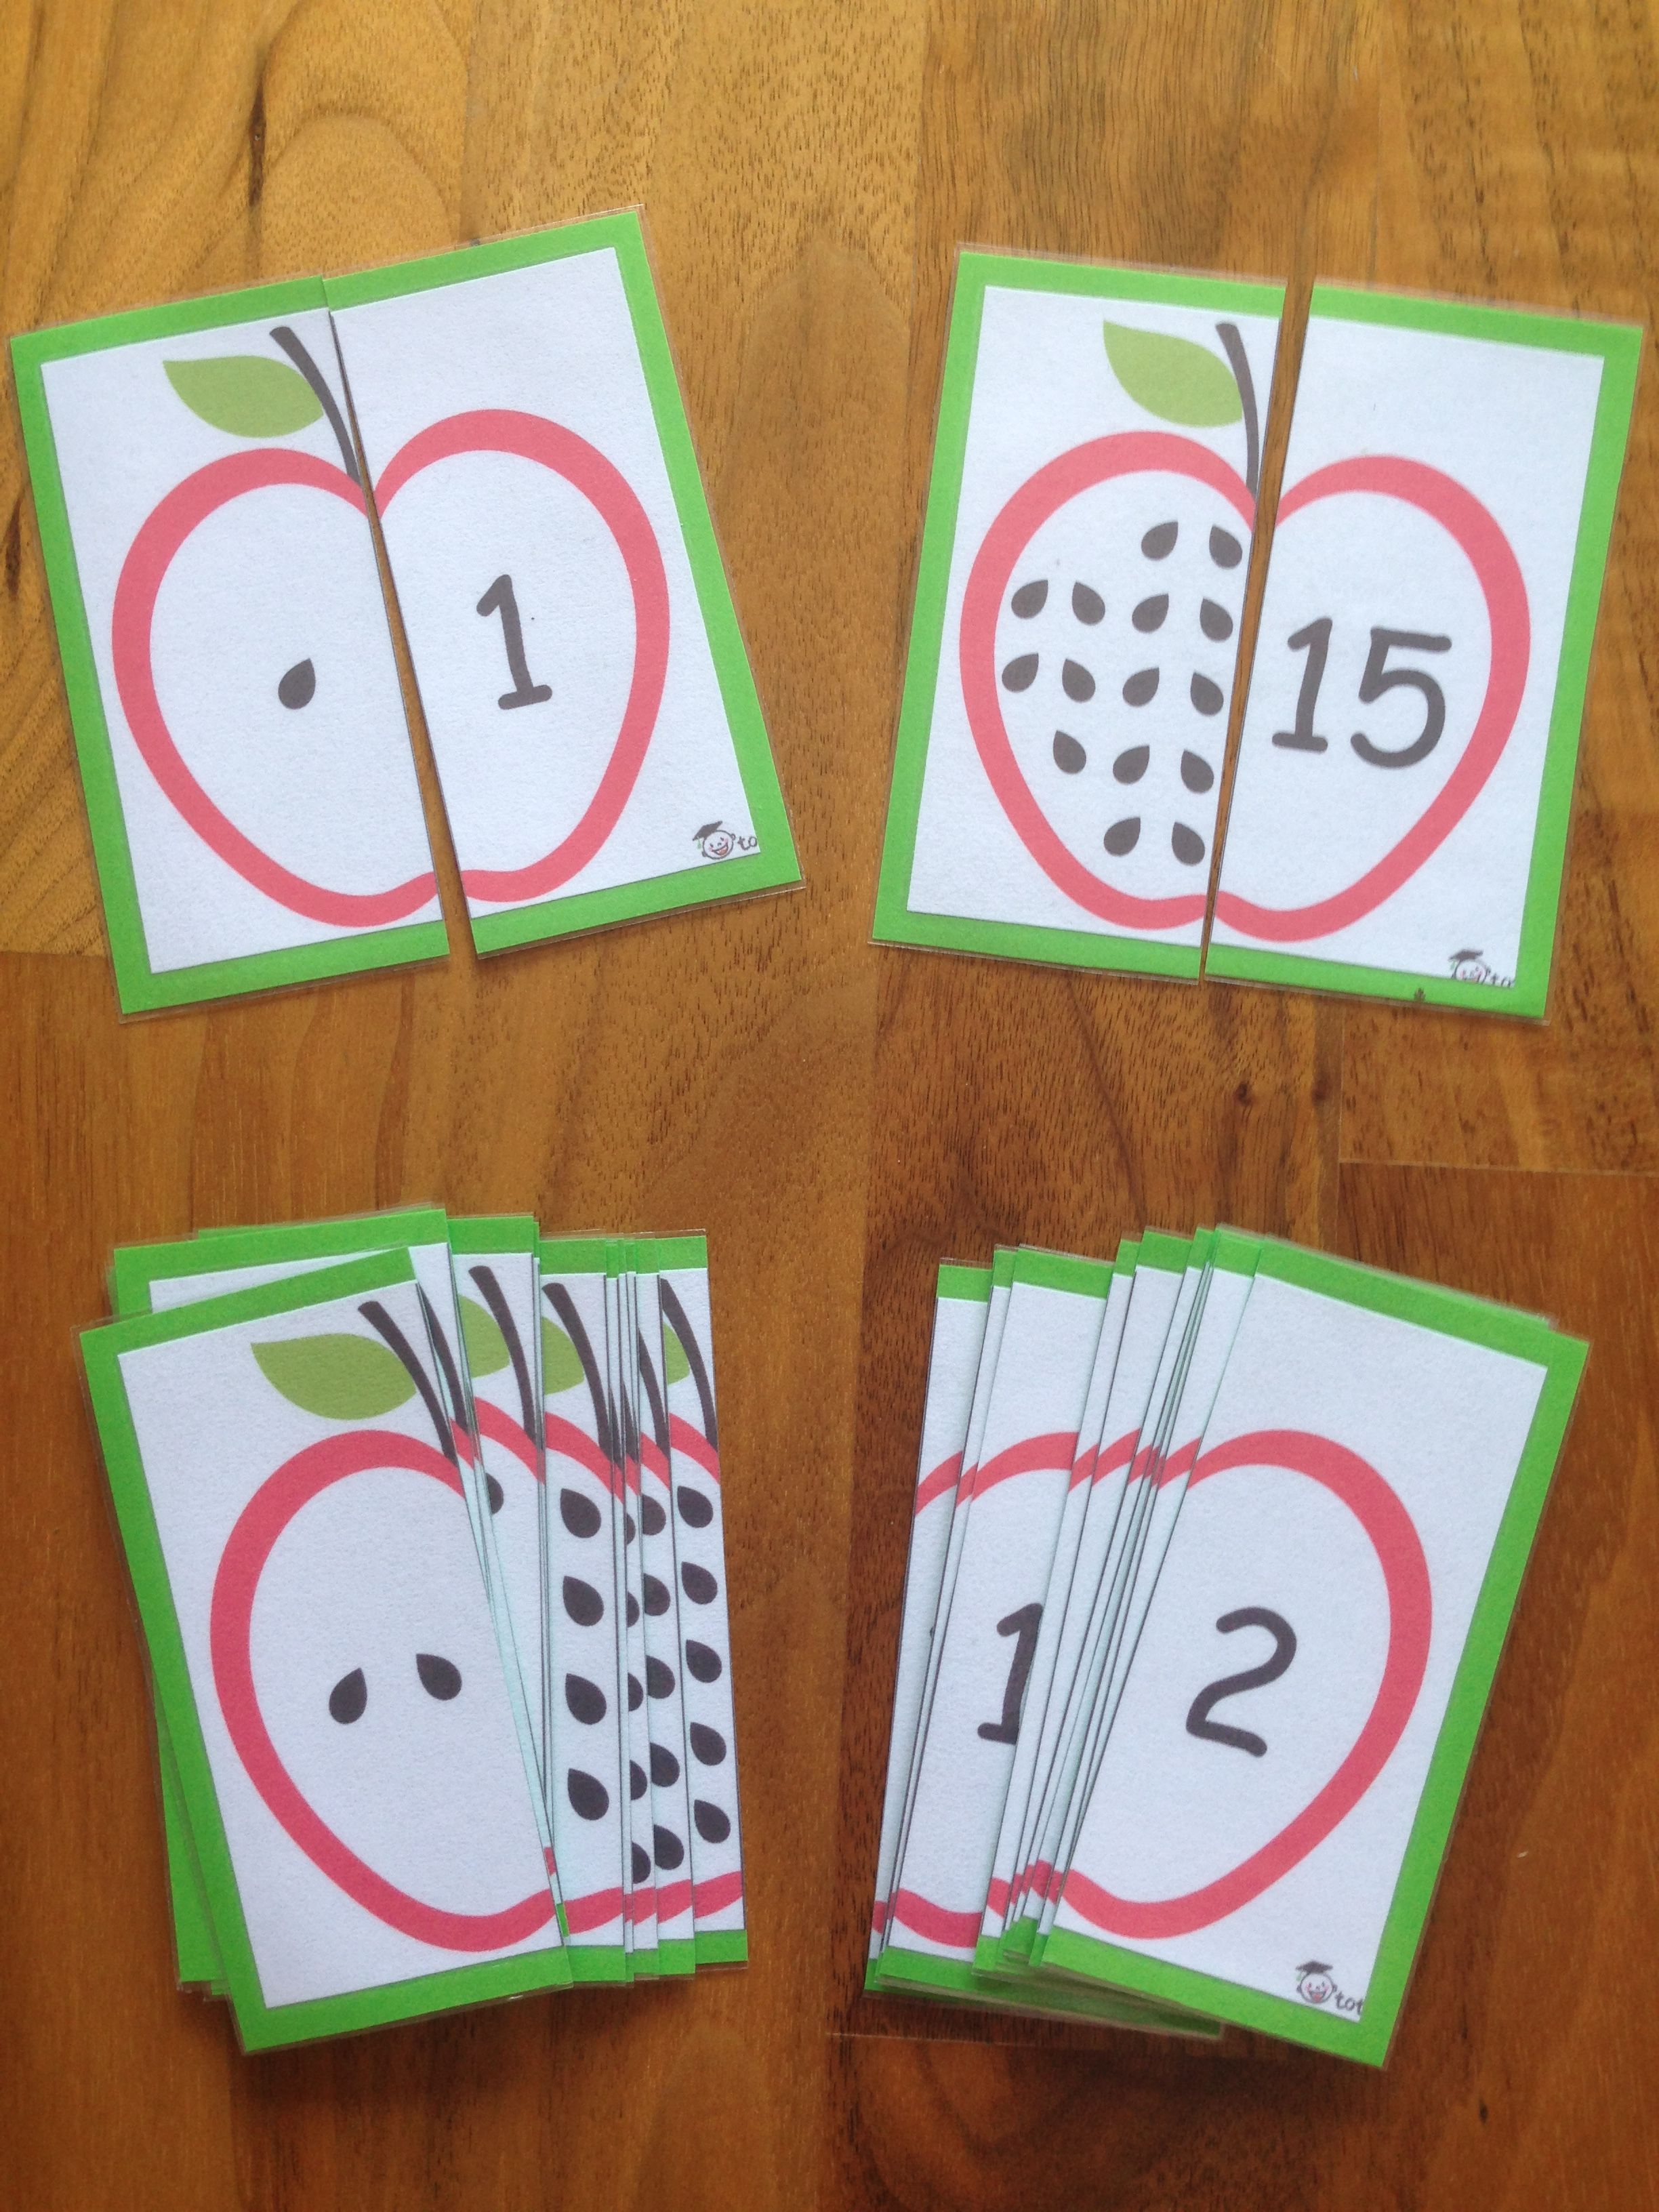 Counting Game Apple Zahlspiel Apfel Enfants Pinterest Contar